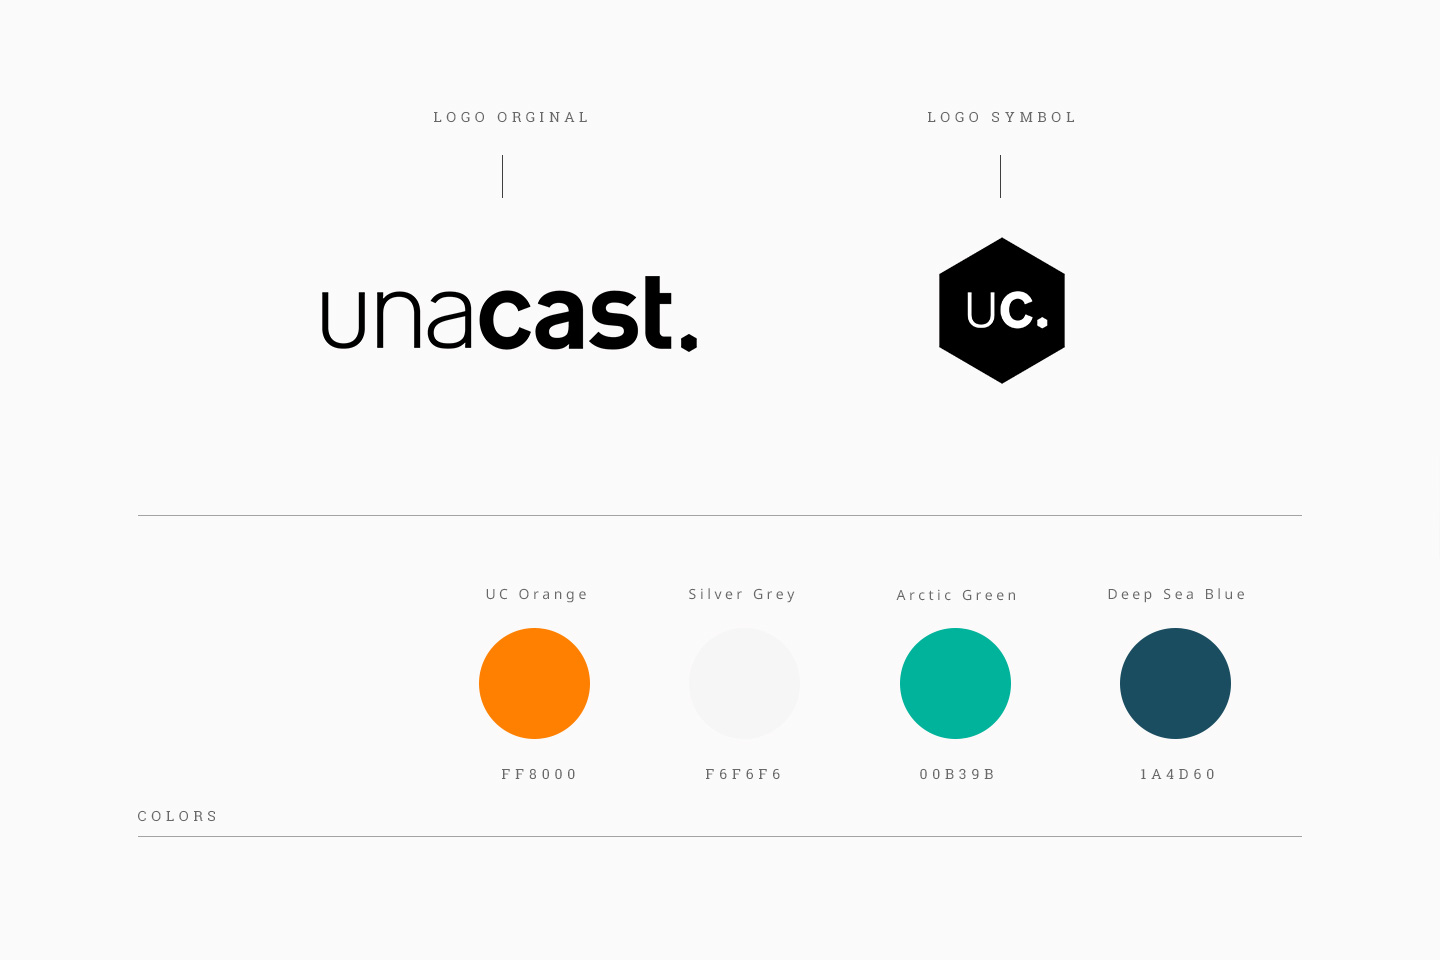 Unacast logo, symbol and colors